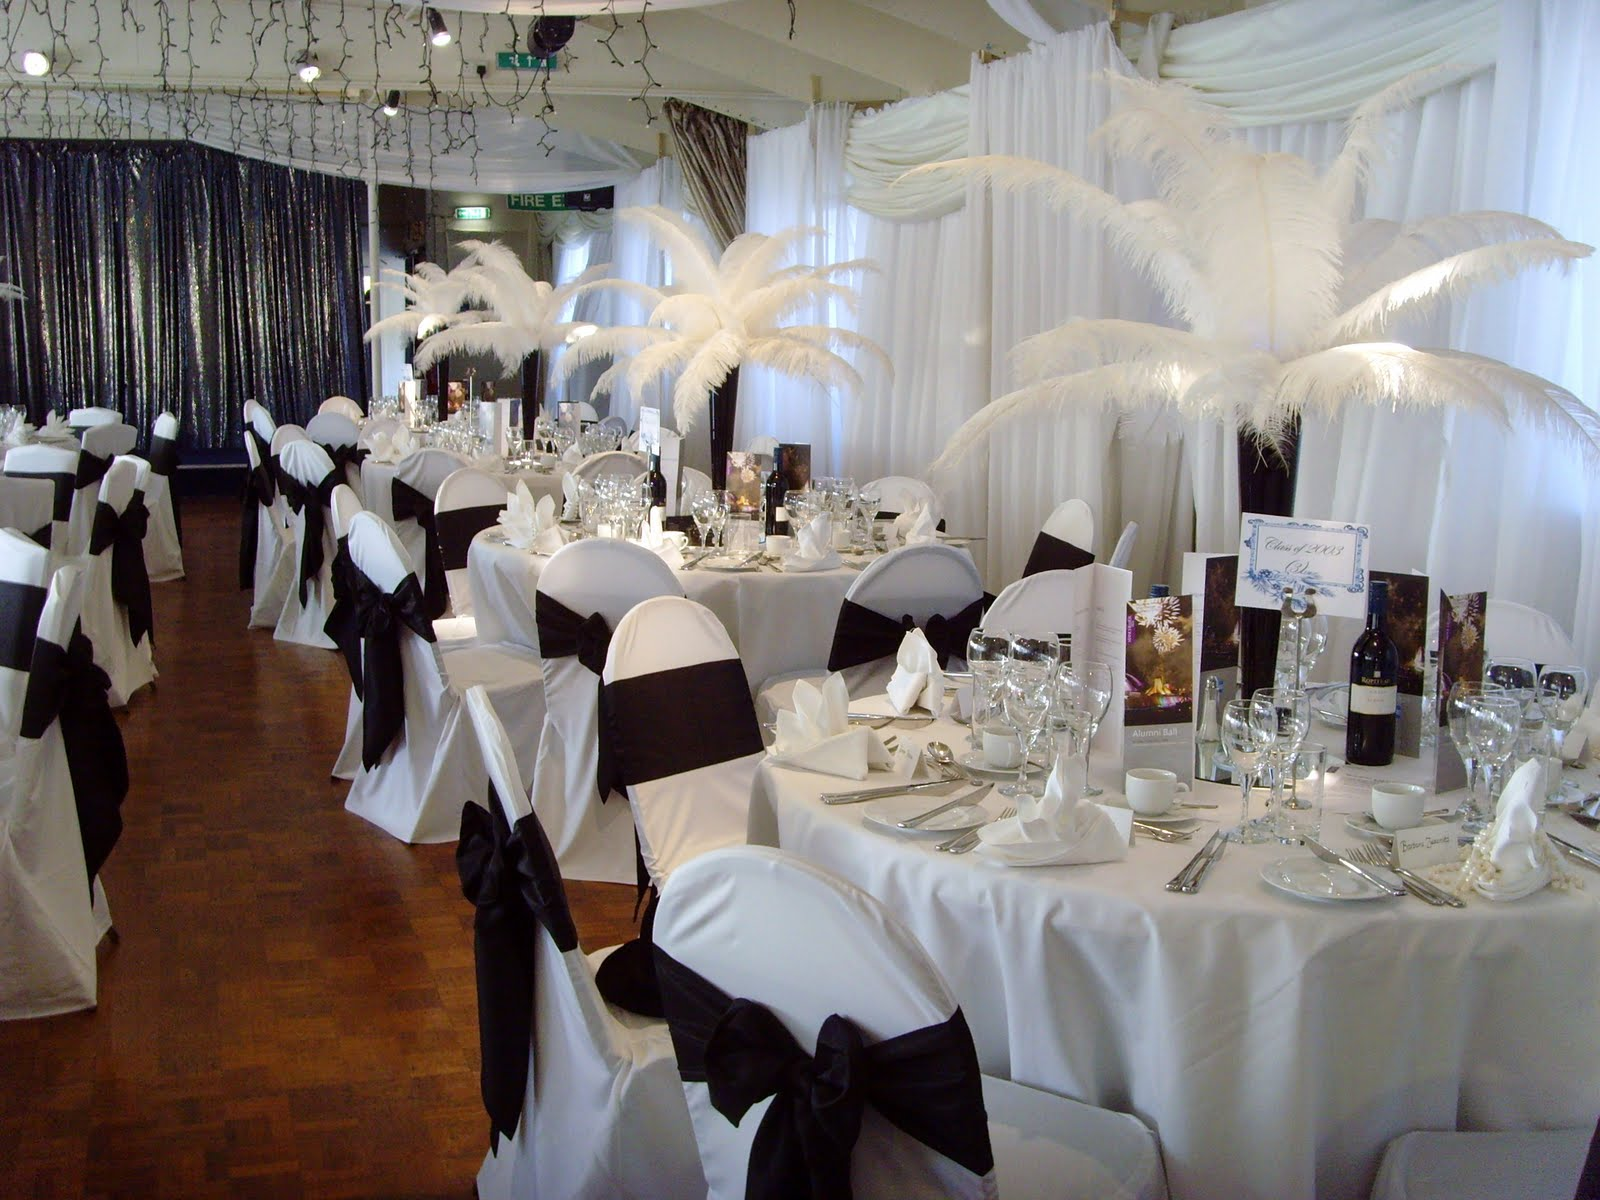 The Best Wedding Decorations Venues Decorations Guide